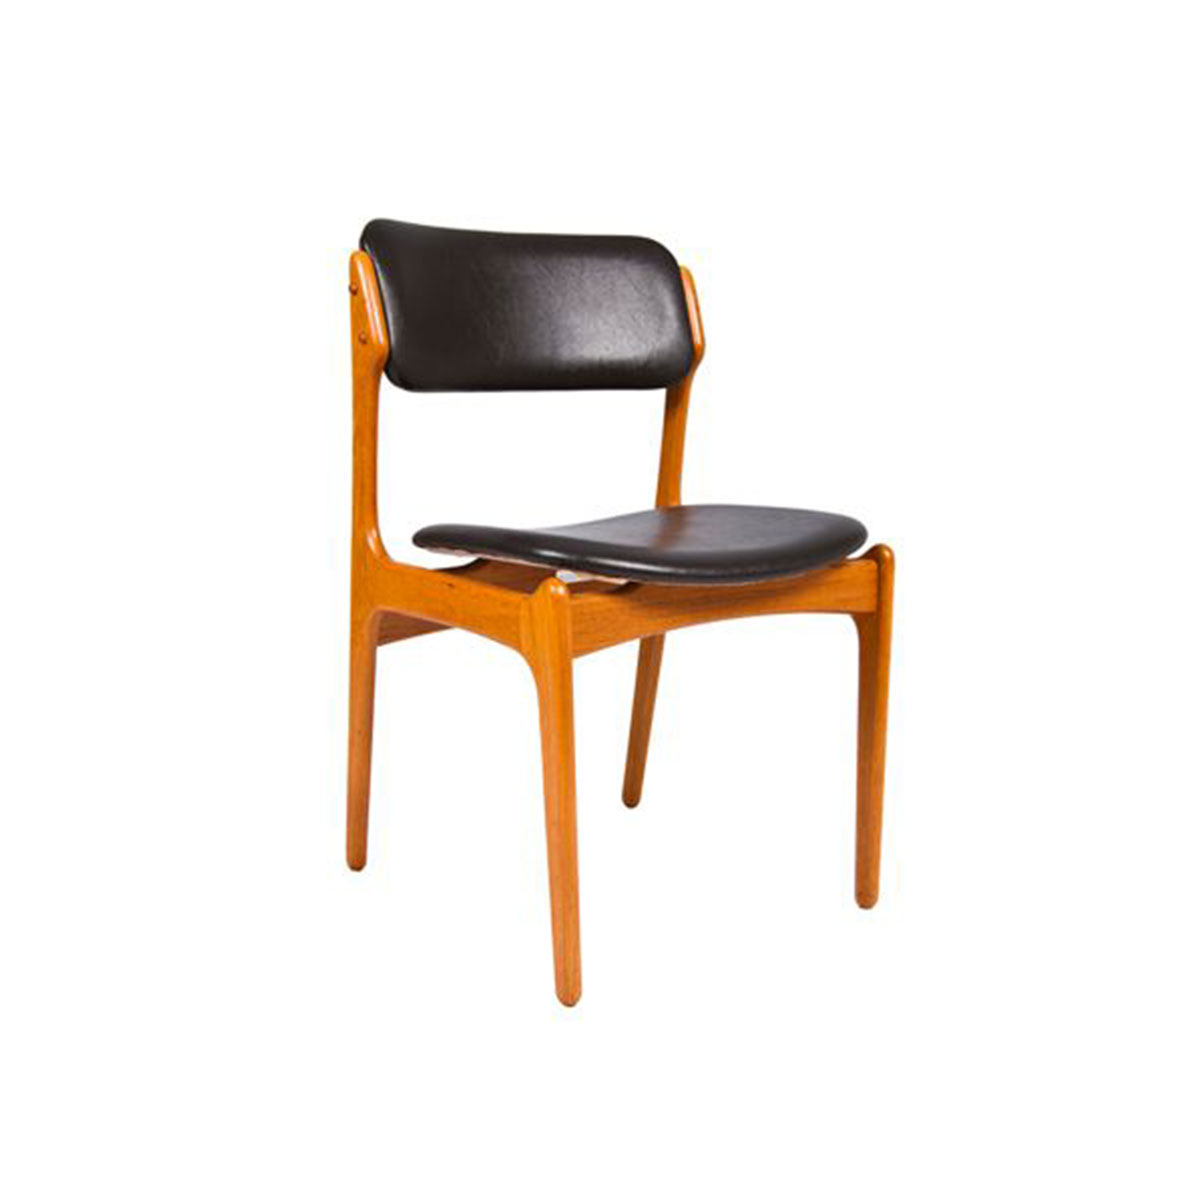 Set of 6 Designer Danish Modern Teak & Leather Dining Chairs by Erik Buch